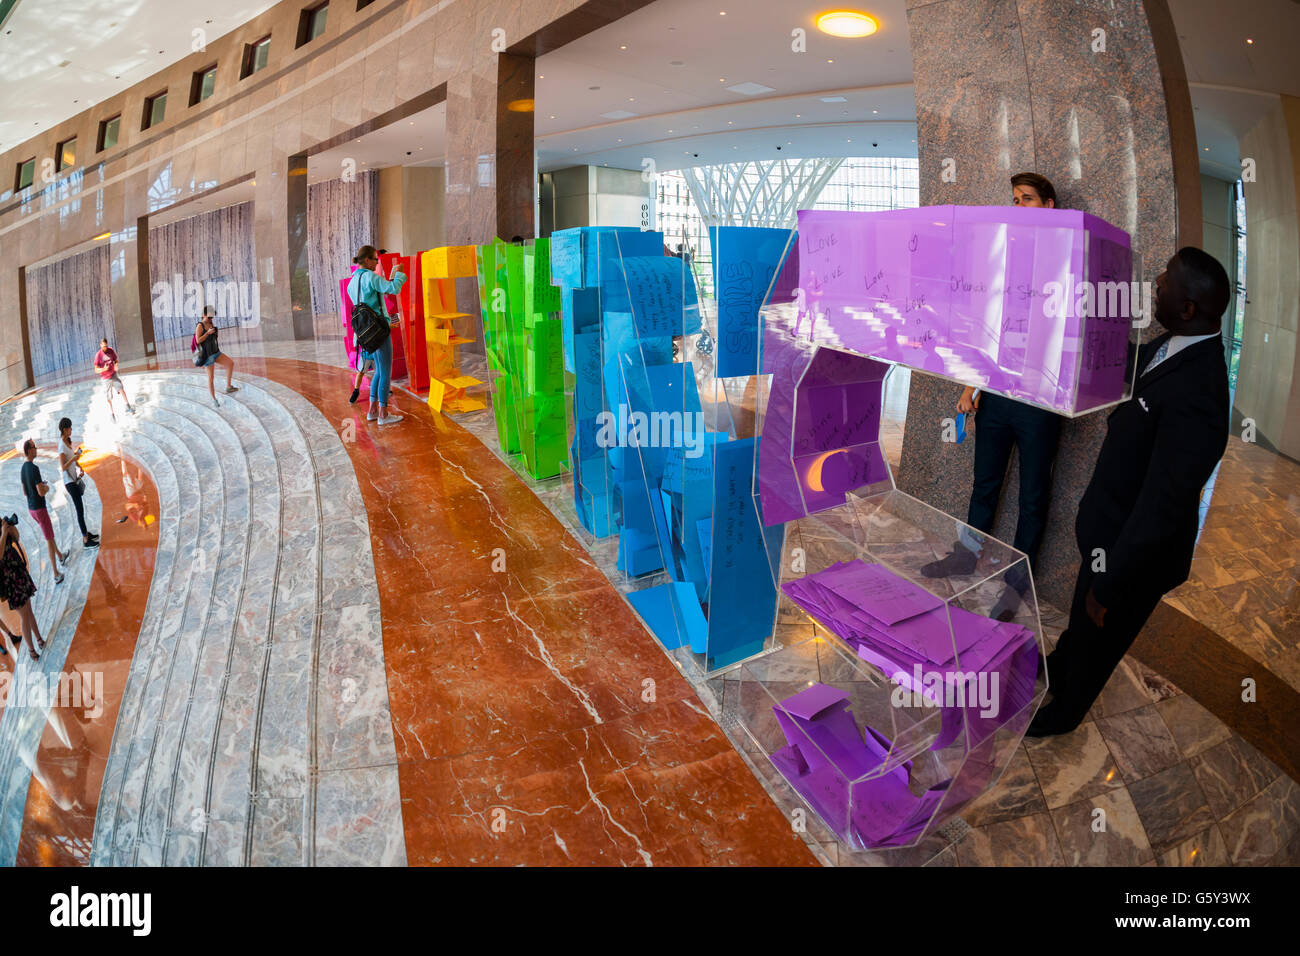 In celebration of Pride Week visitors participate in the 'Love Wins' Letter Project installation in Brookfield - Stock Image